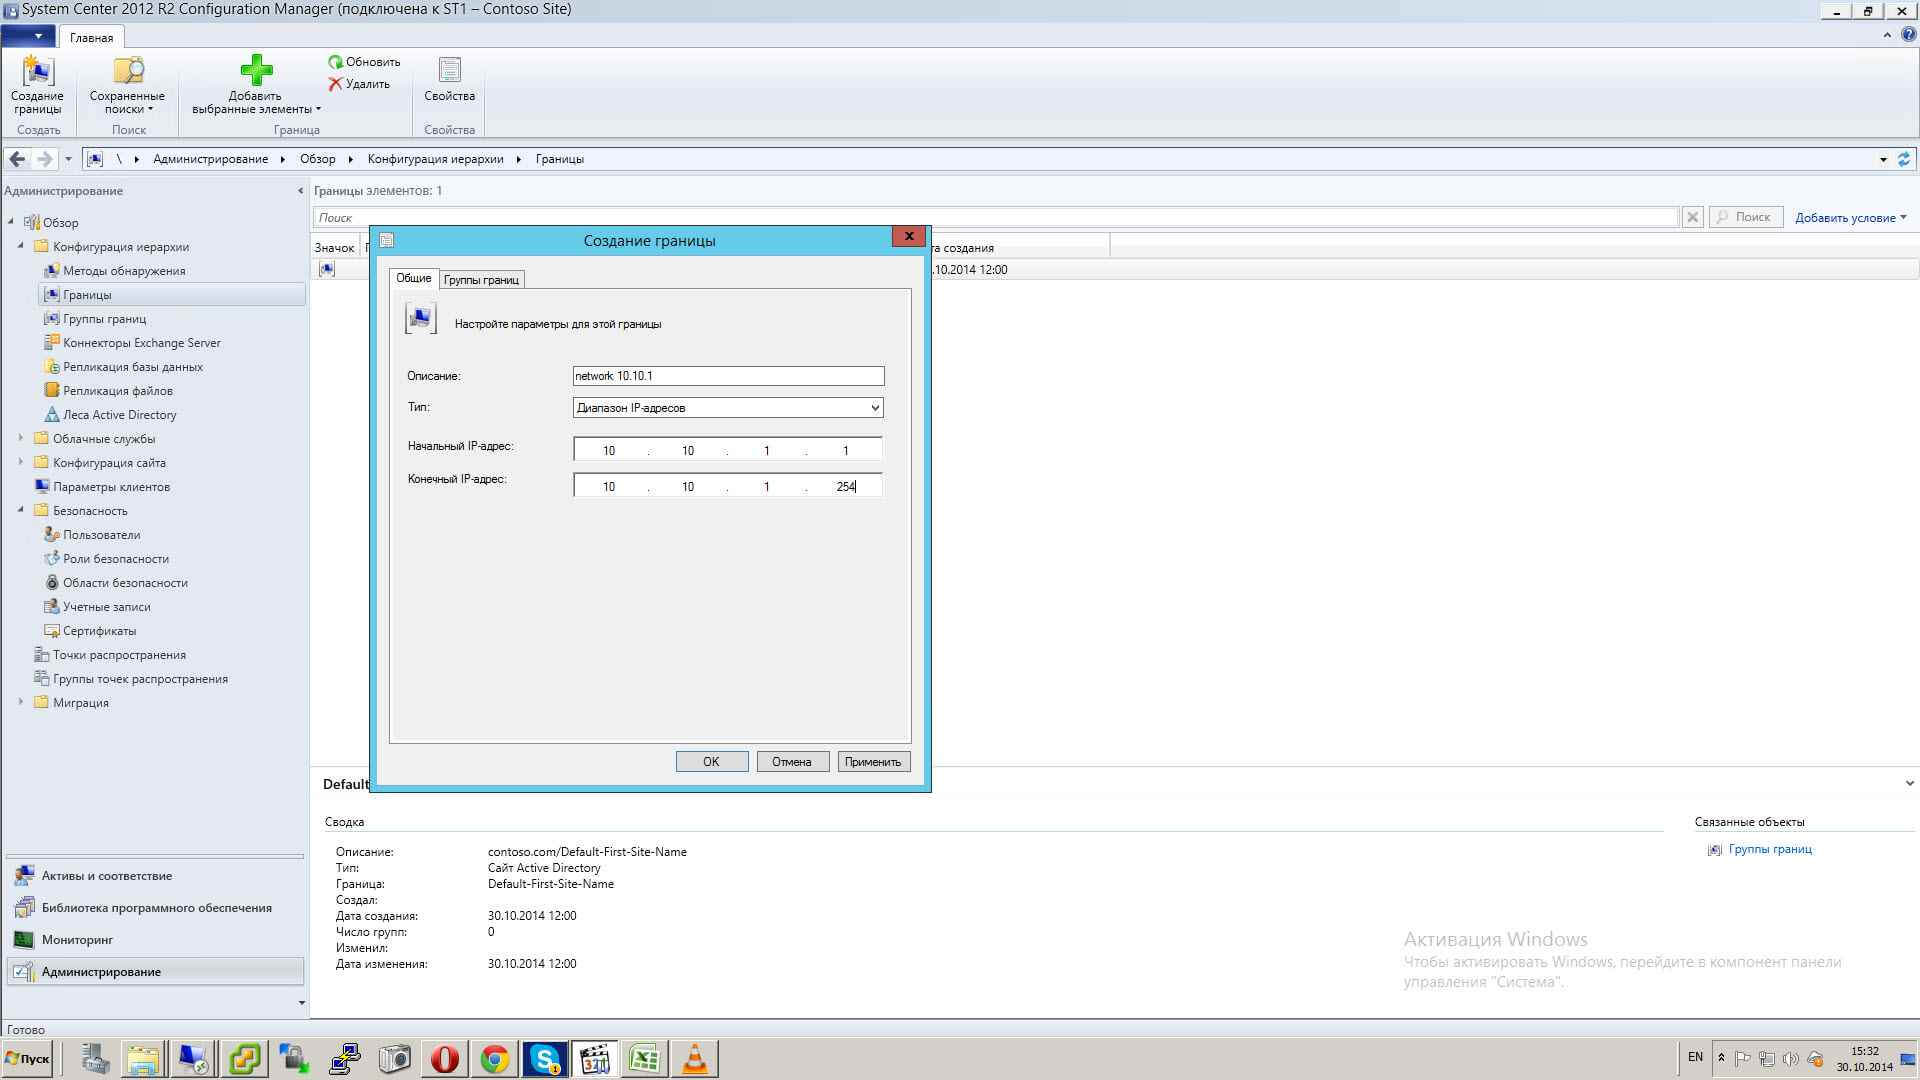 Как установить SCCM (System Center Configuration Manager) 2012R2 в windows server 2012R2 -3 часть. Базовая настройка site server-37